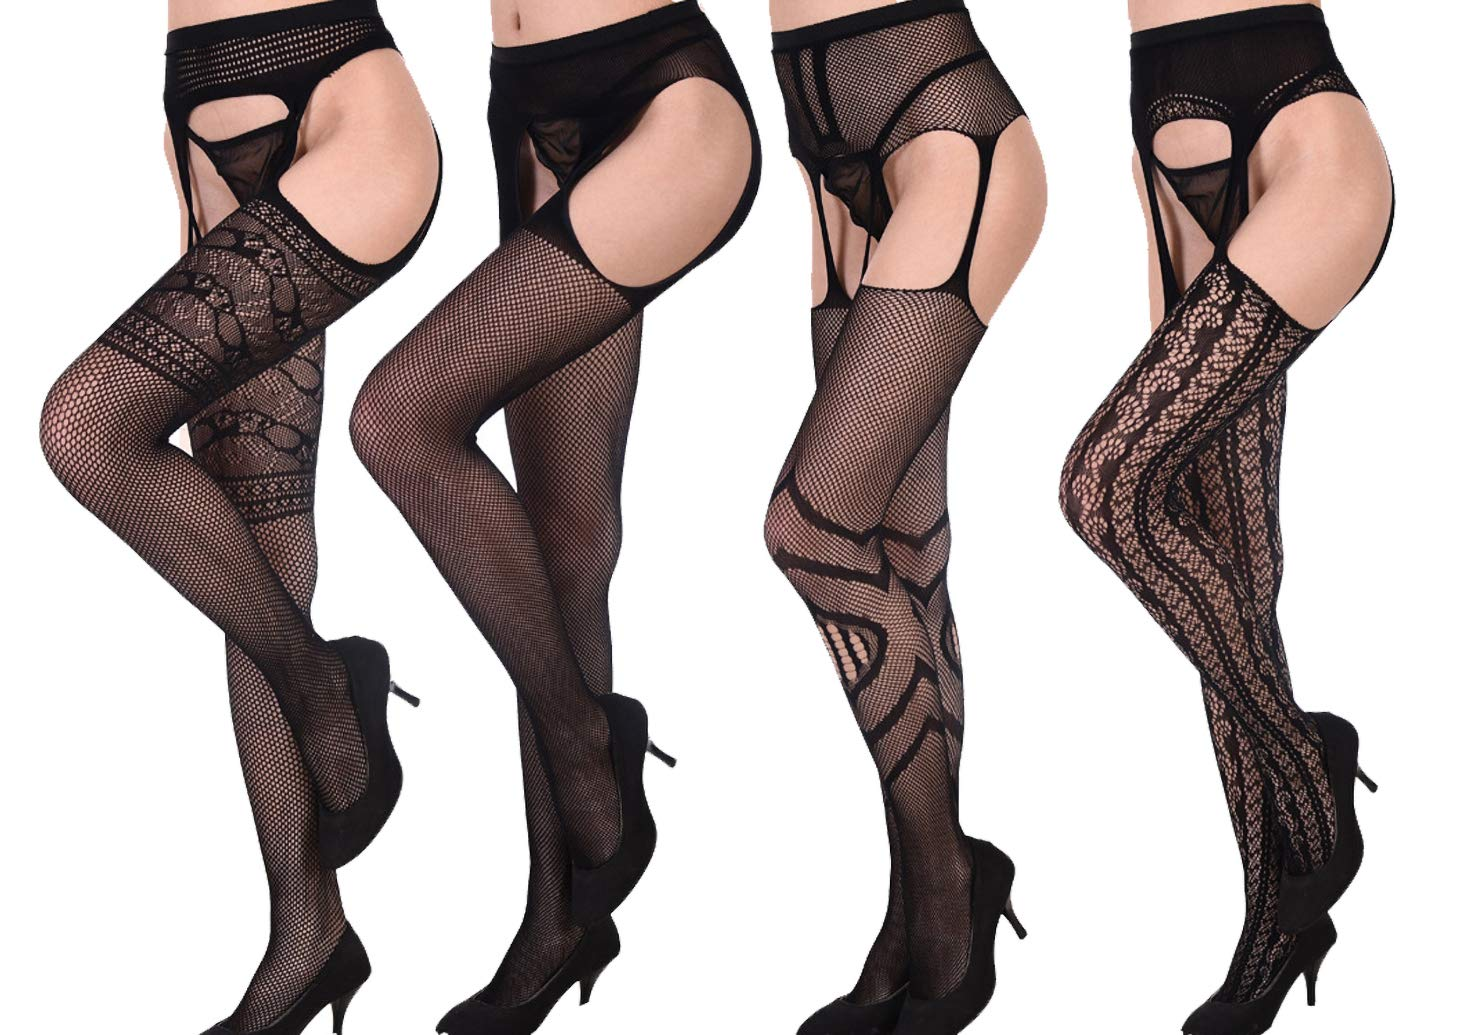 Women's Sexy Open Crotch Mesh Fishnet Thigh High Stockings with Garter Belt (One Size, 4 Pairs (style 5-8))